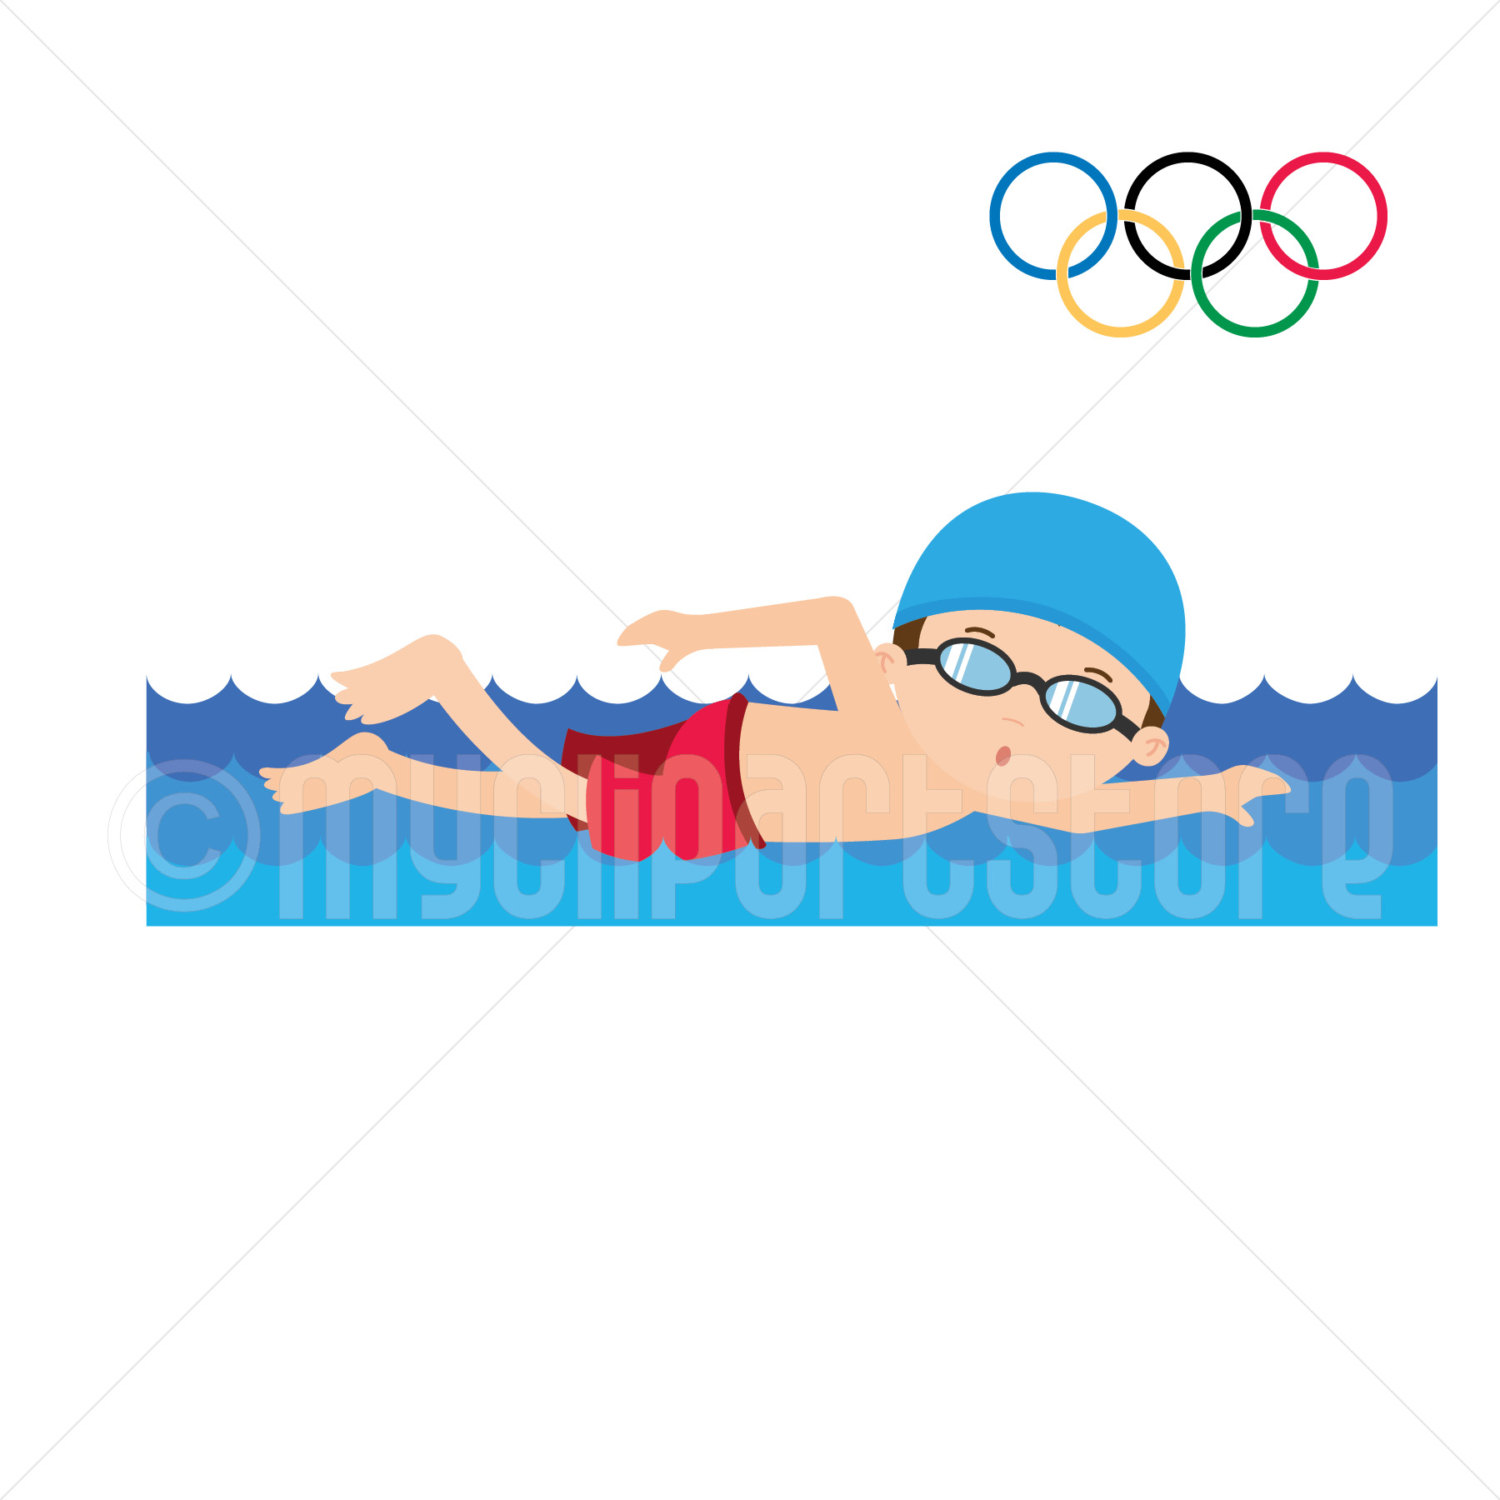 1500x1500 Clipart Summer Olympics Clipart Swimming Olympic Games